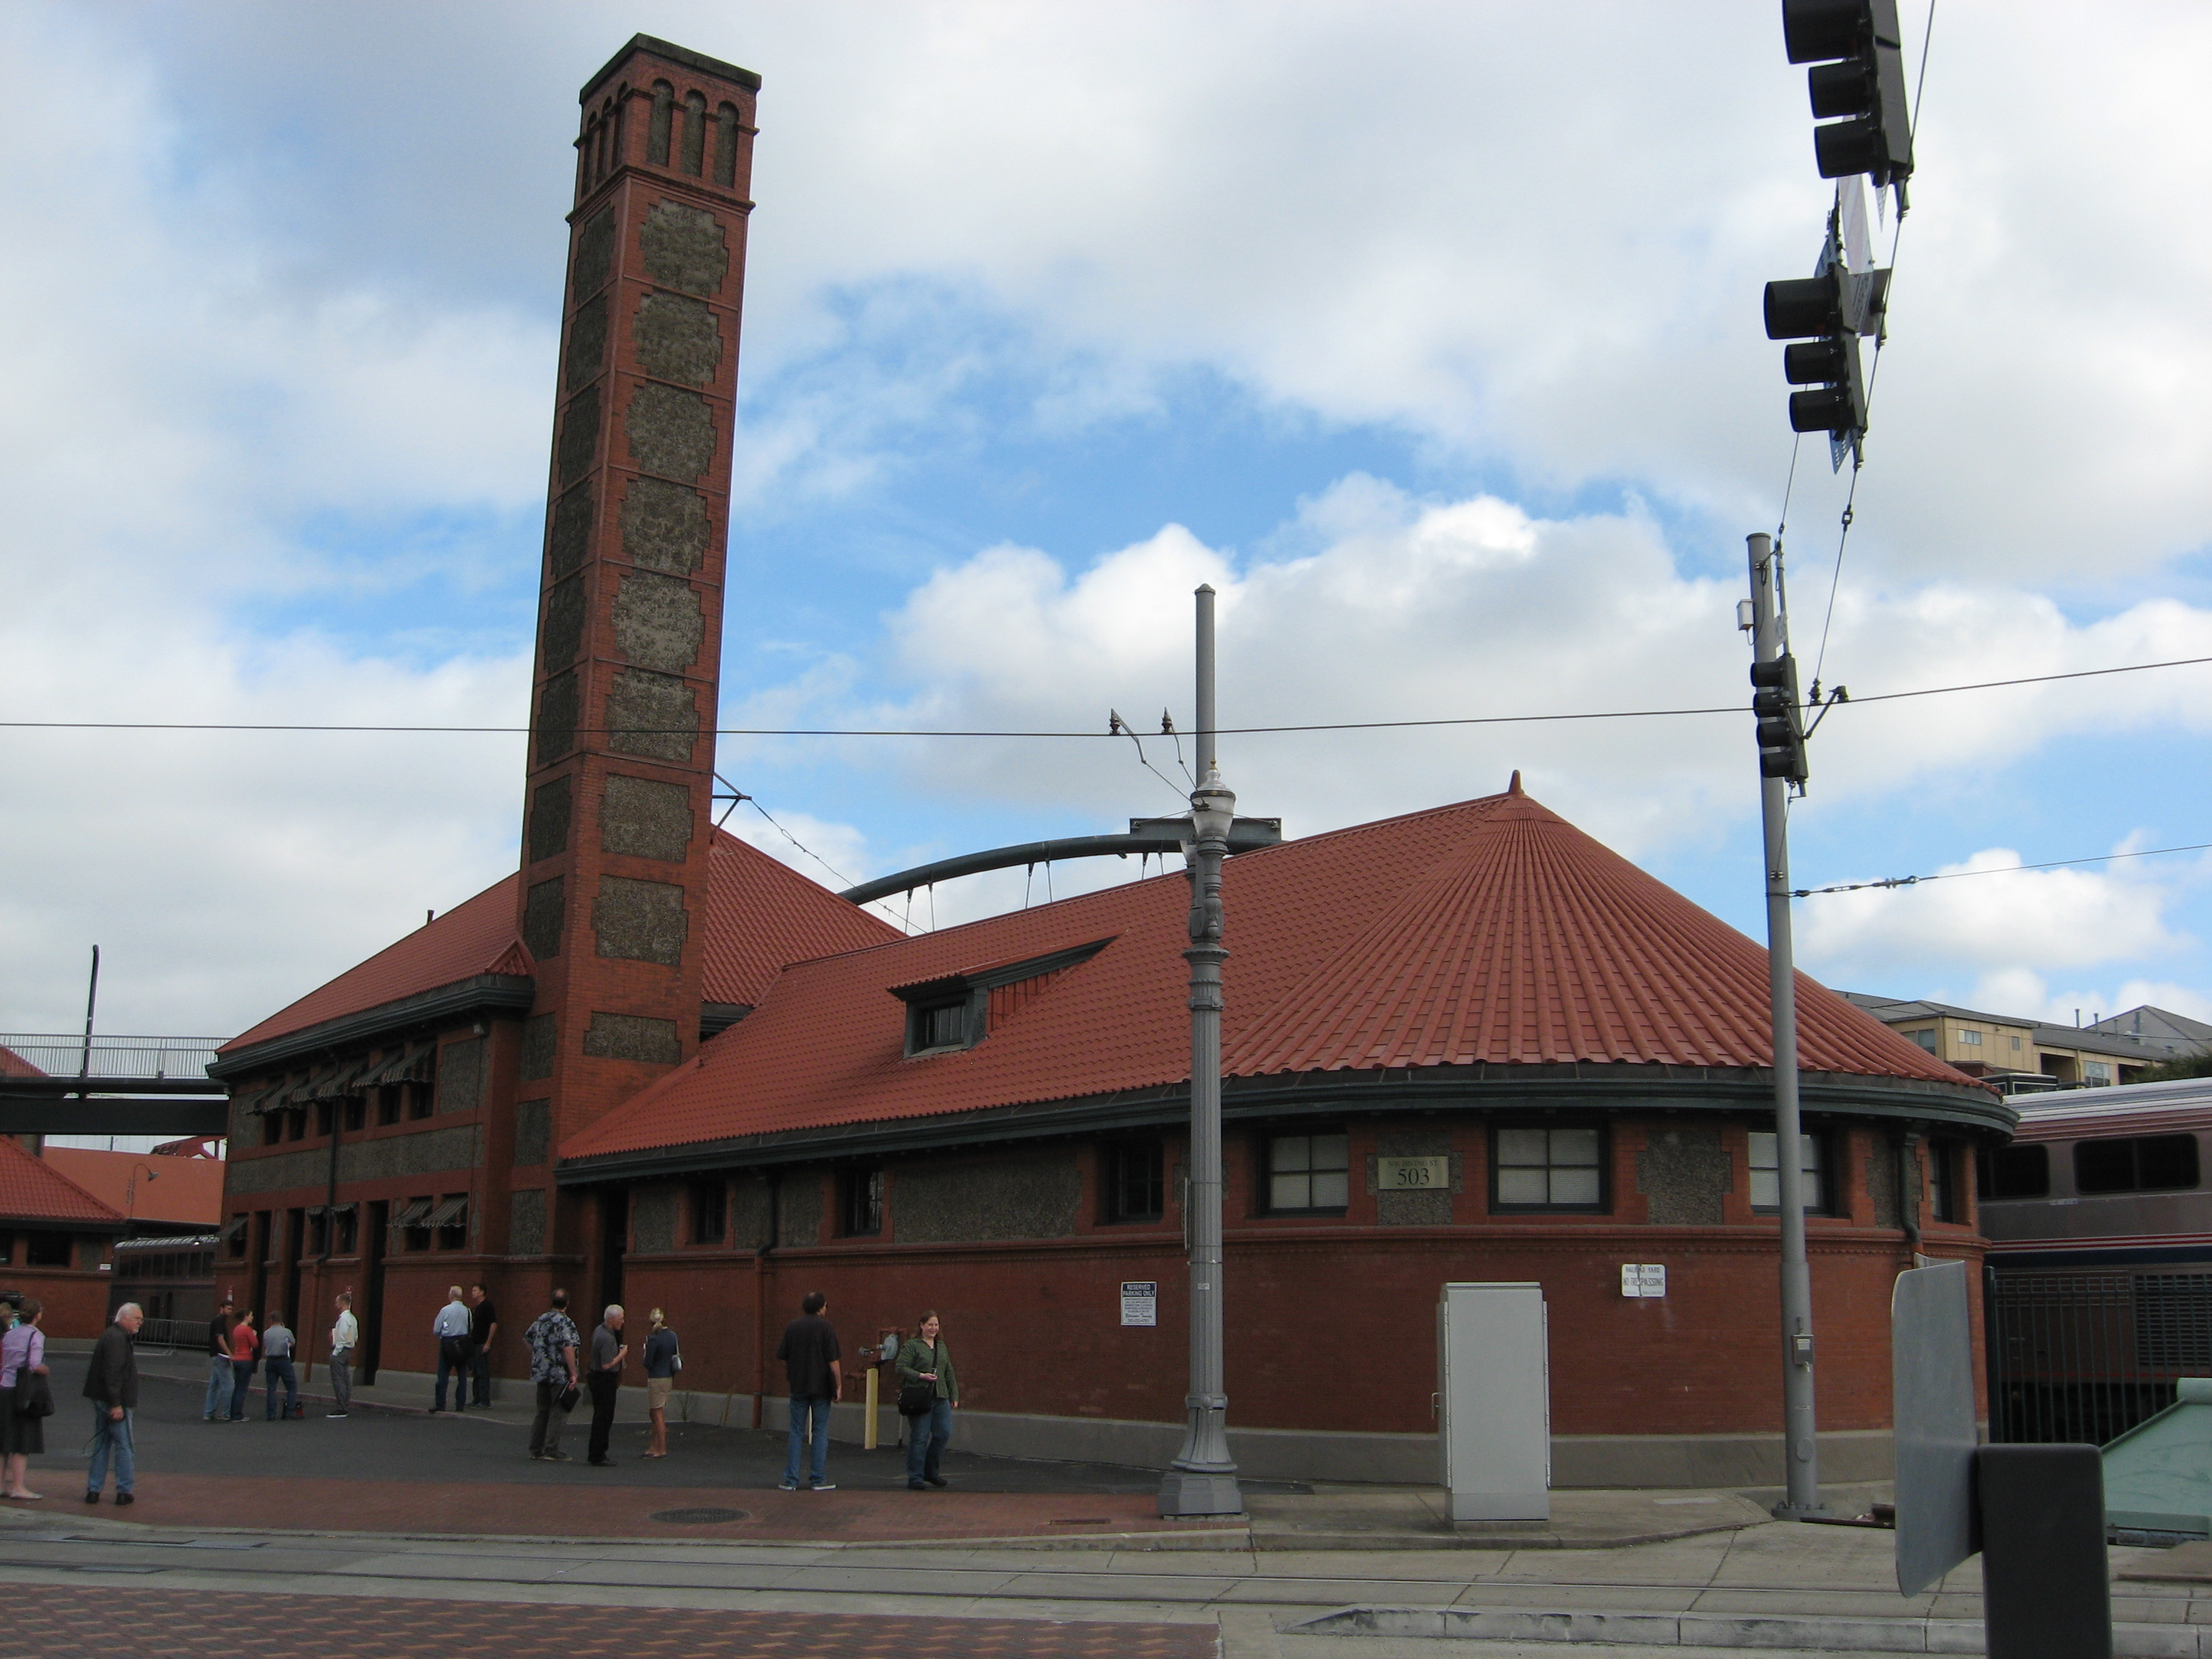 Union Station Annex